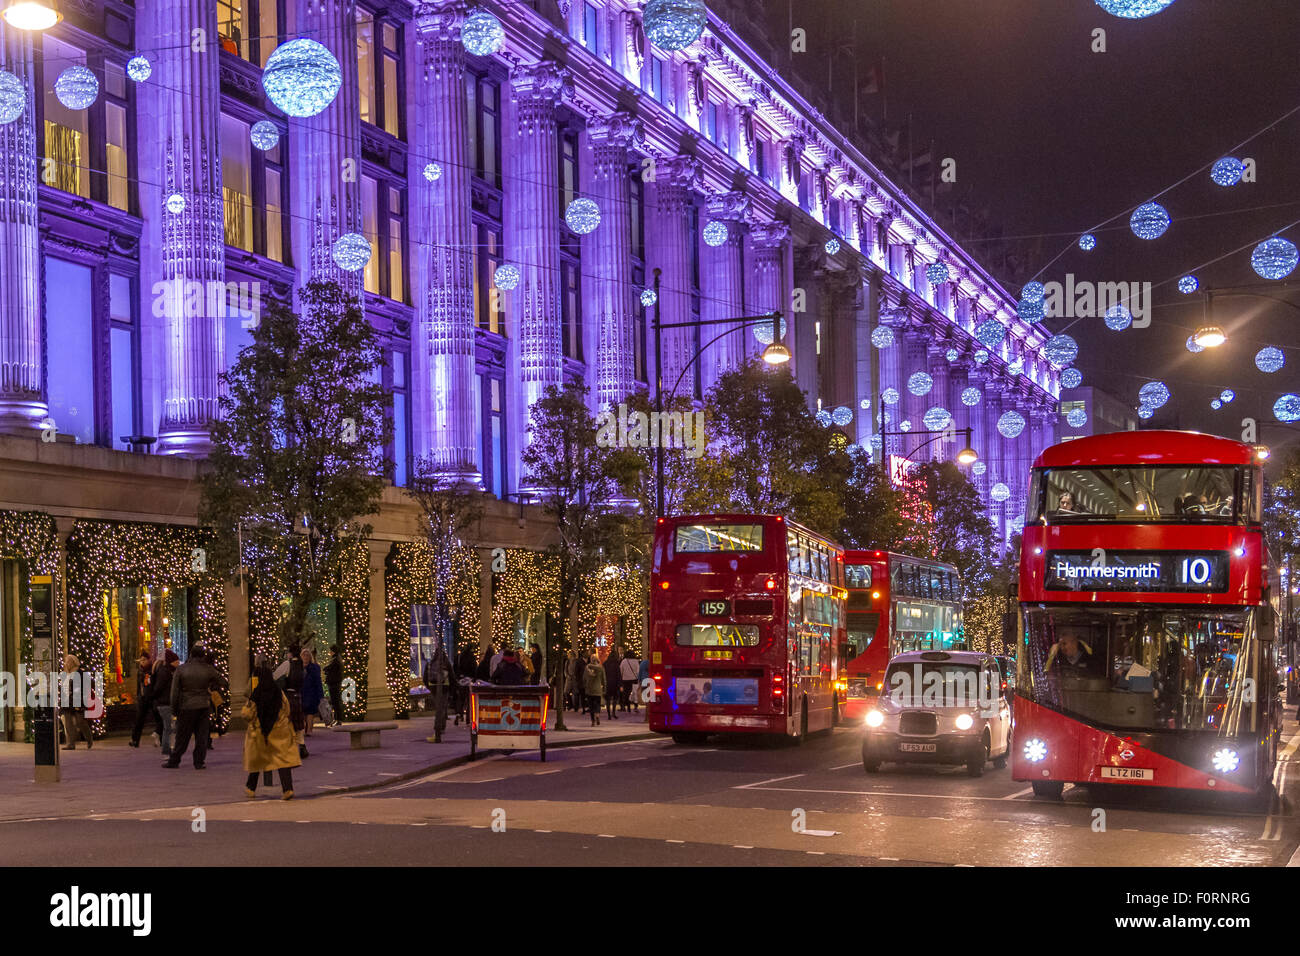 London Buses outside Selfridges on Oxford St filled with Christmas shoppers at Christmas Time with the Oxford St - Stock Image